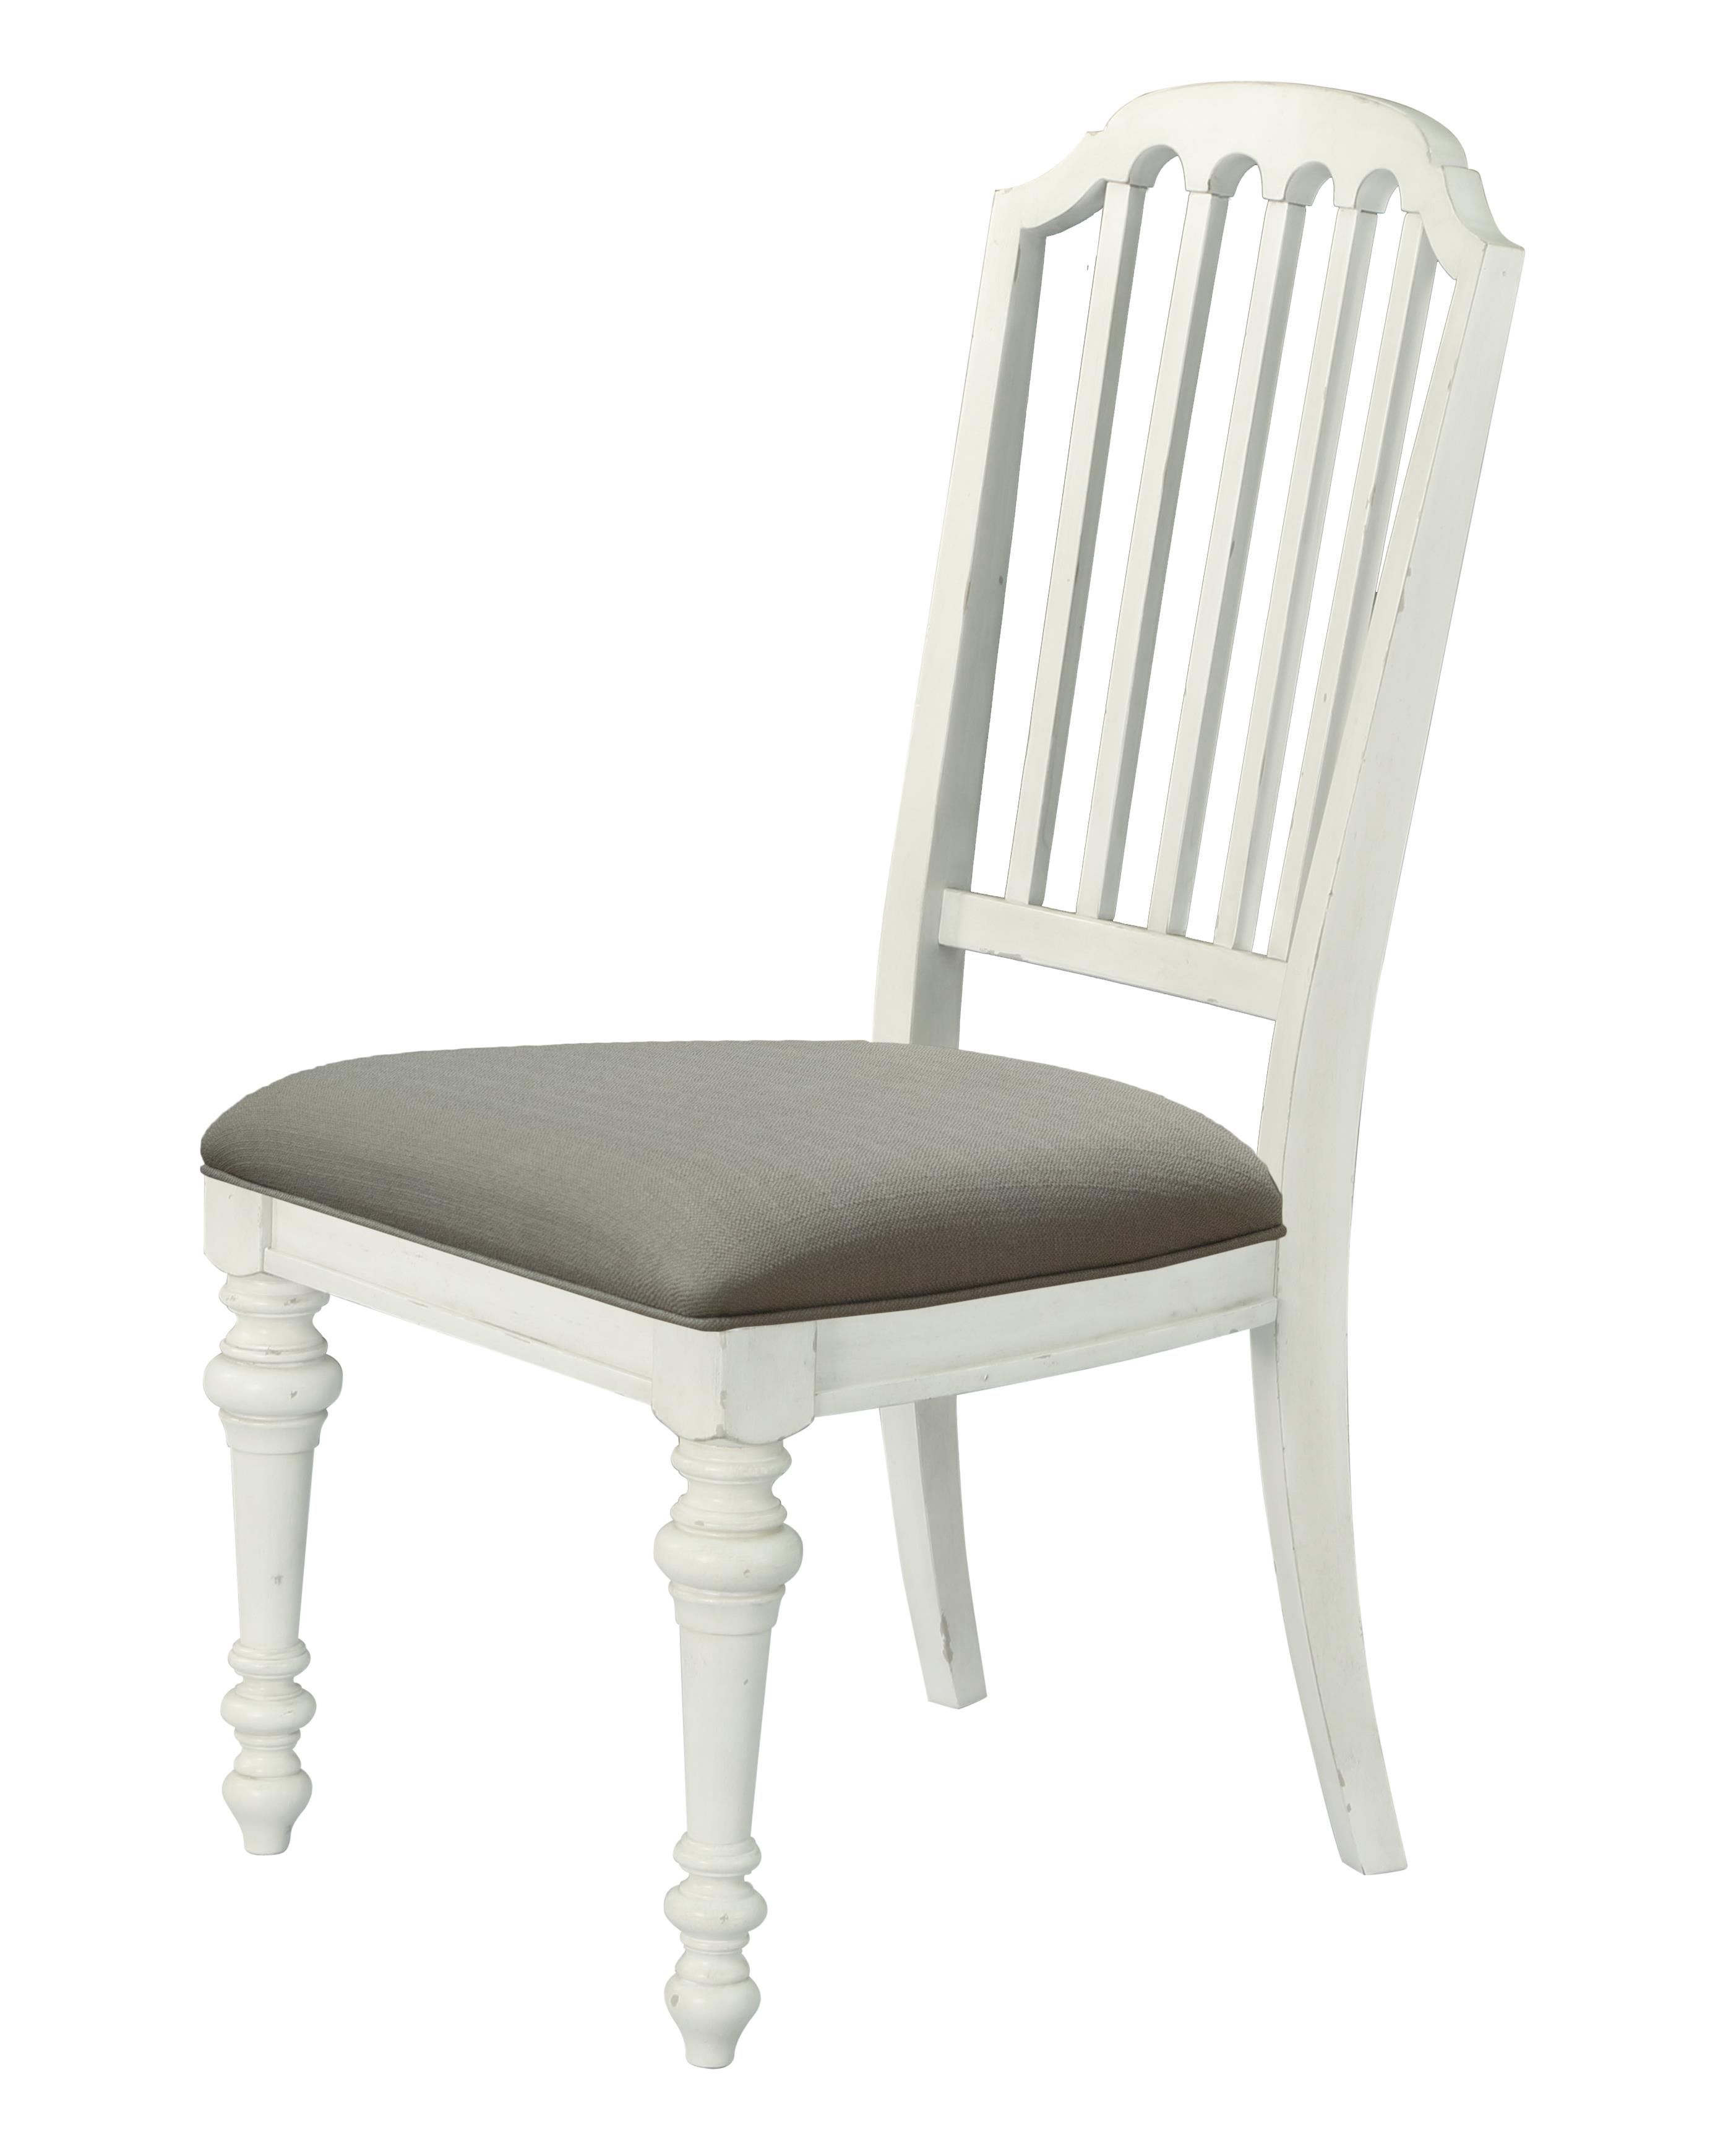 Belfort Select Magnolia Park Dining Side Chair with Upholstered Seat - Item Number: D3681-62